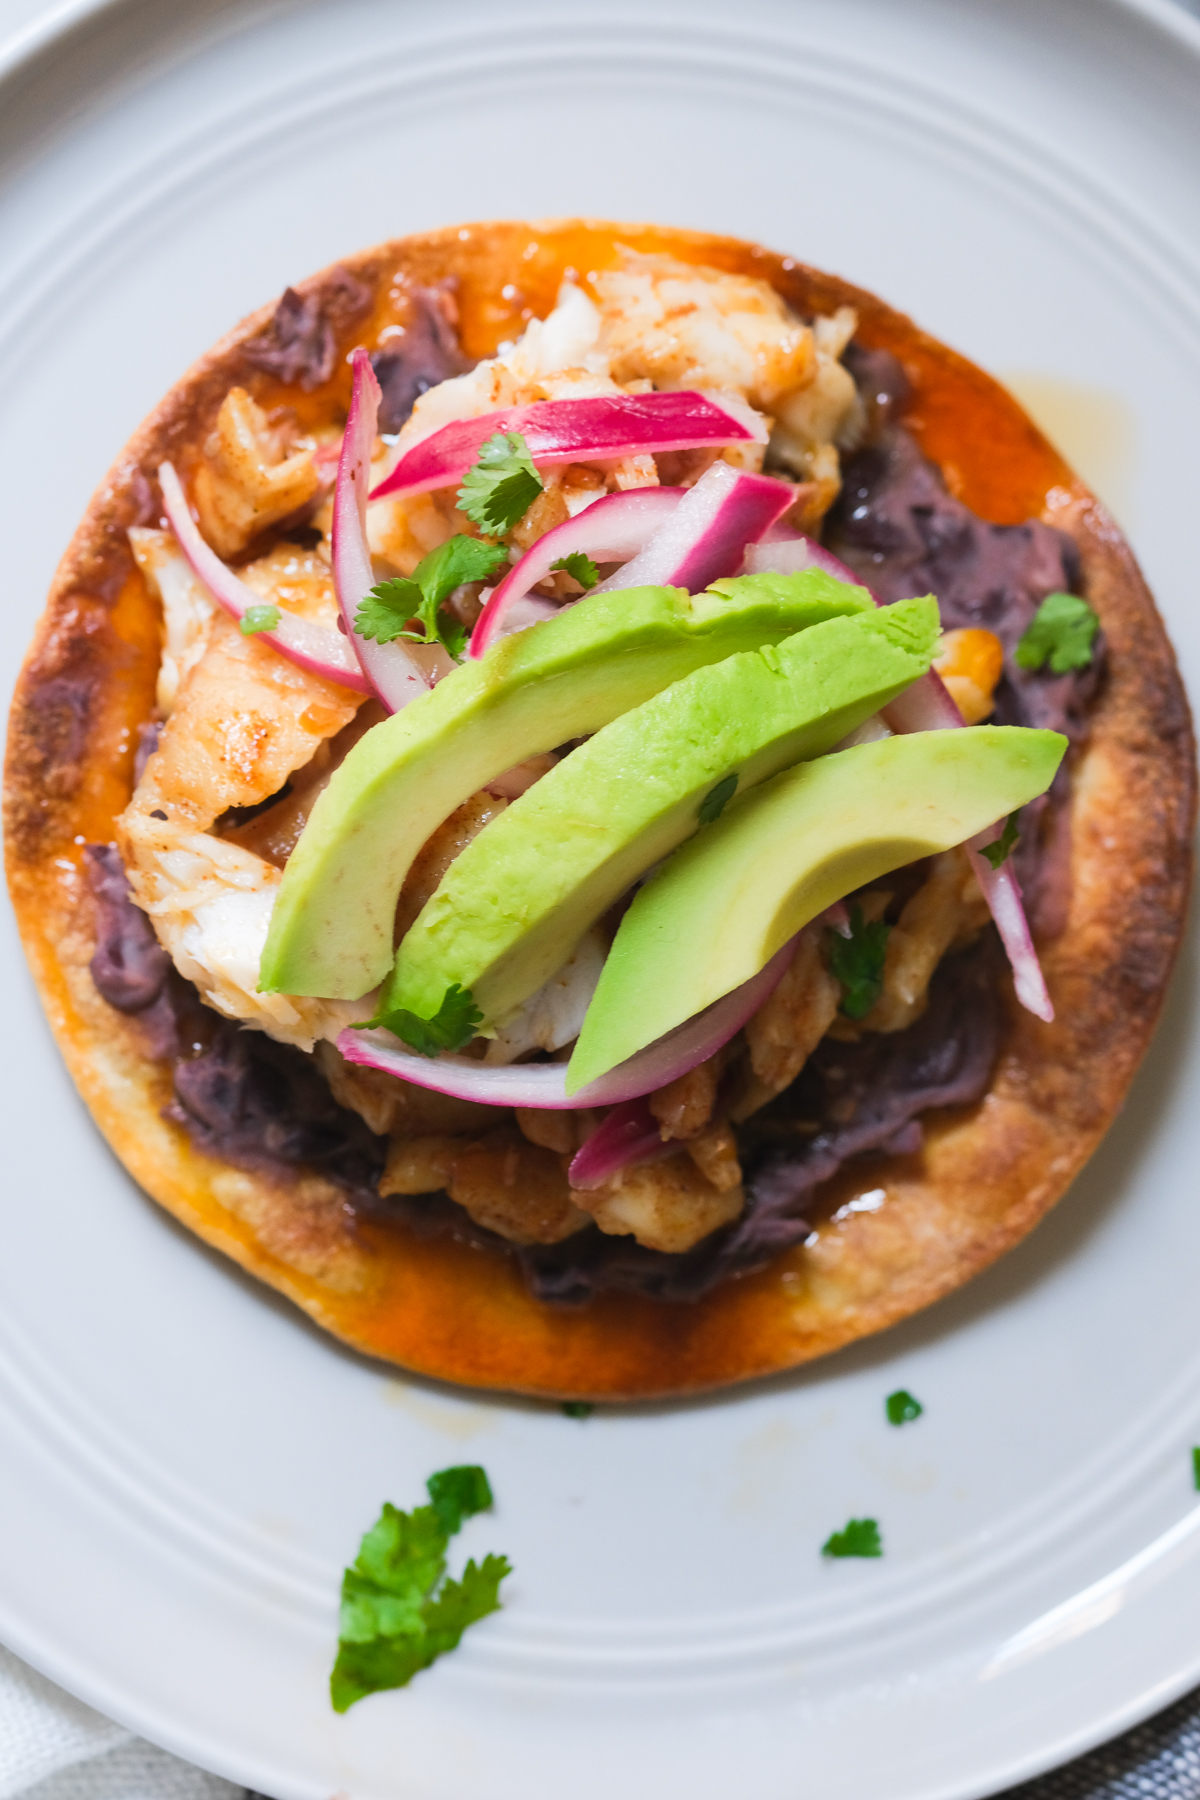 tostada with refried black beans and toppings